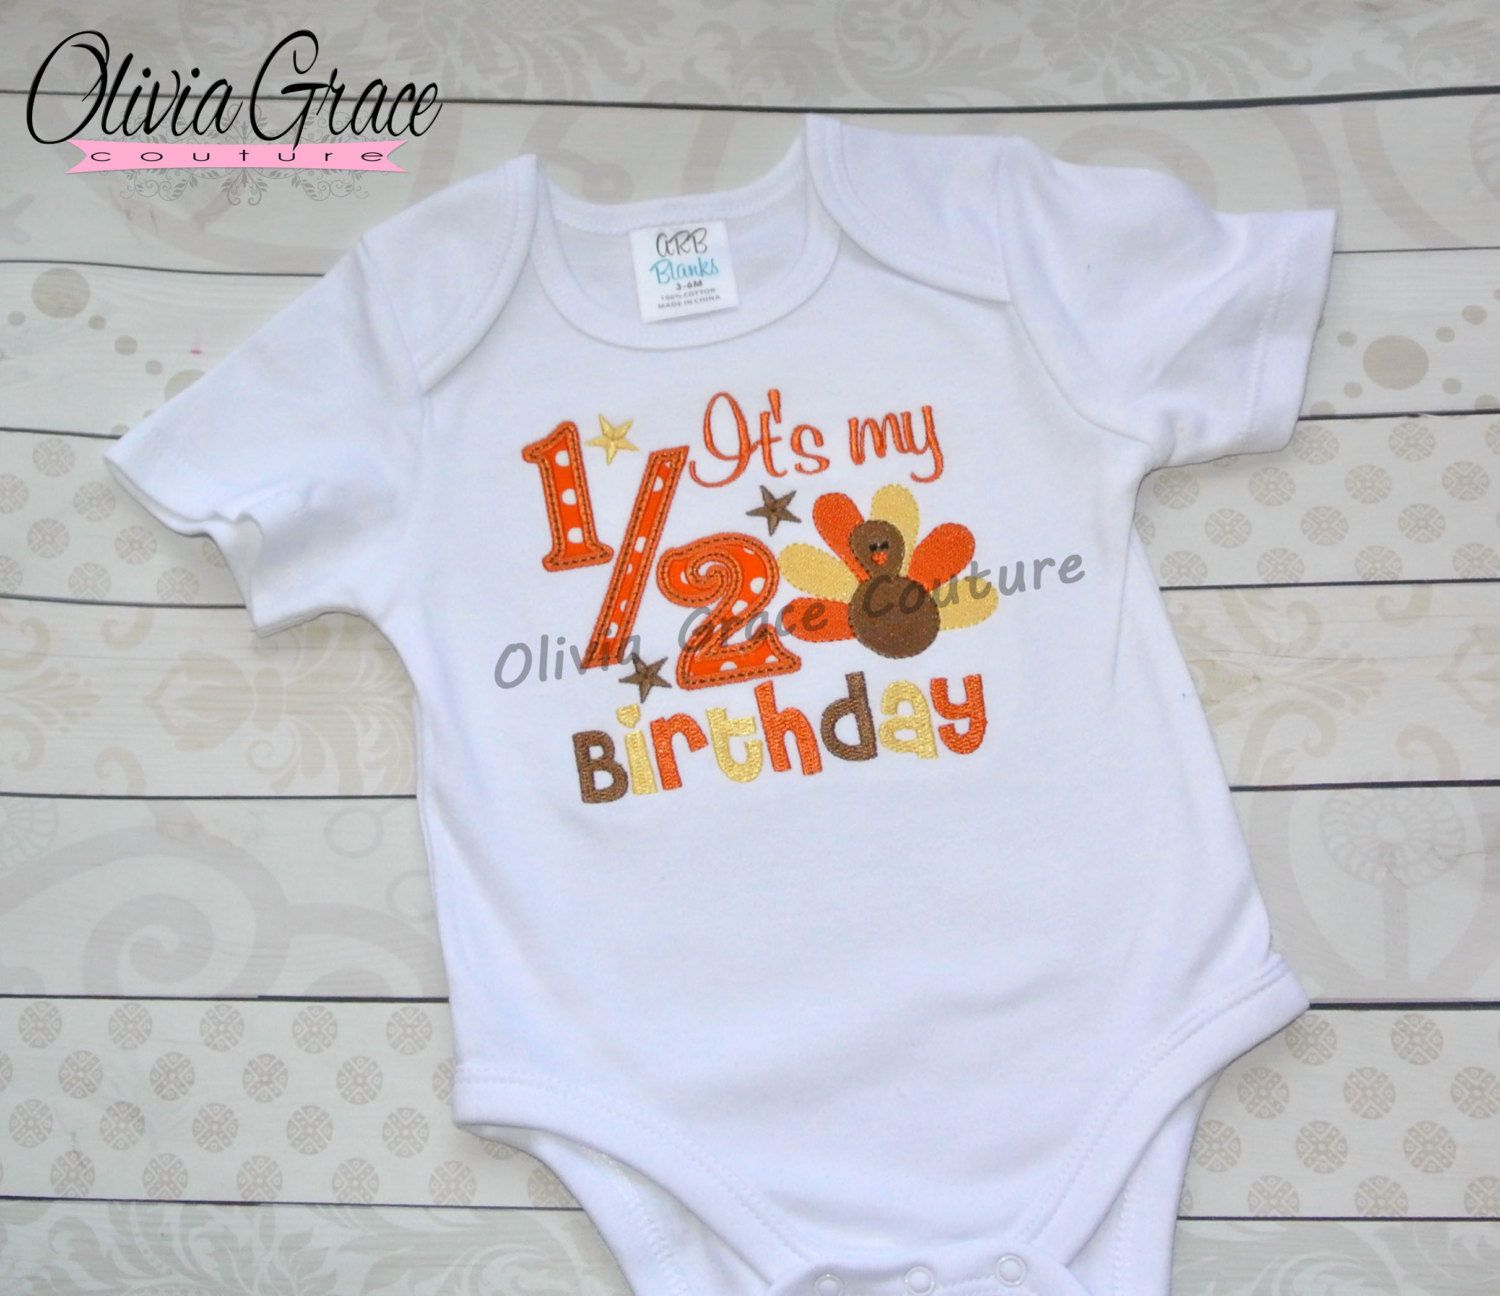 Appliqued baby clothes 6 Month birthday infant bodysuit T-shirt Embroidery Monogrammed